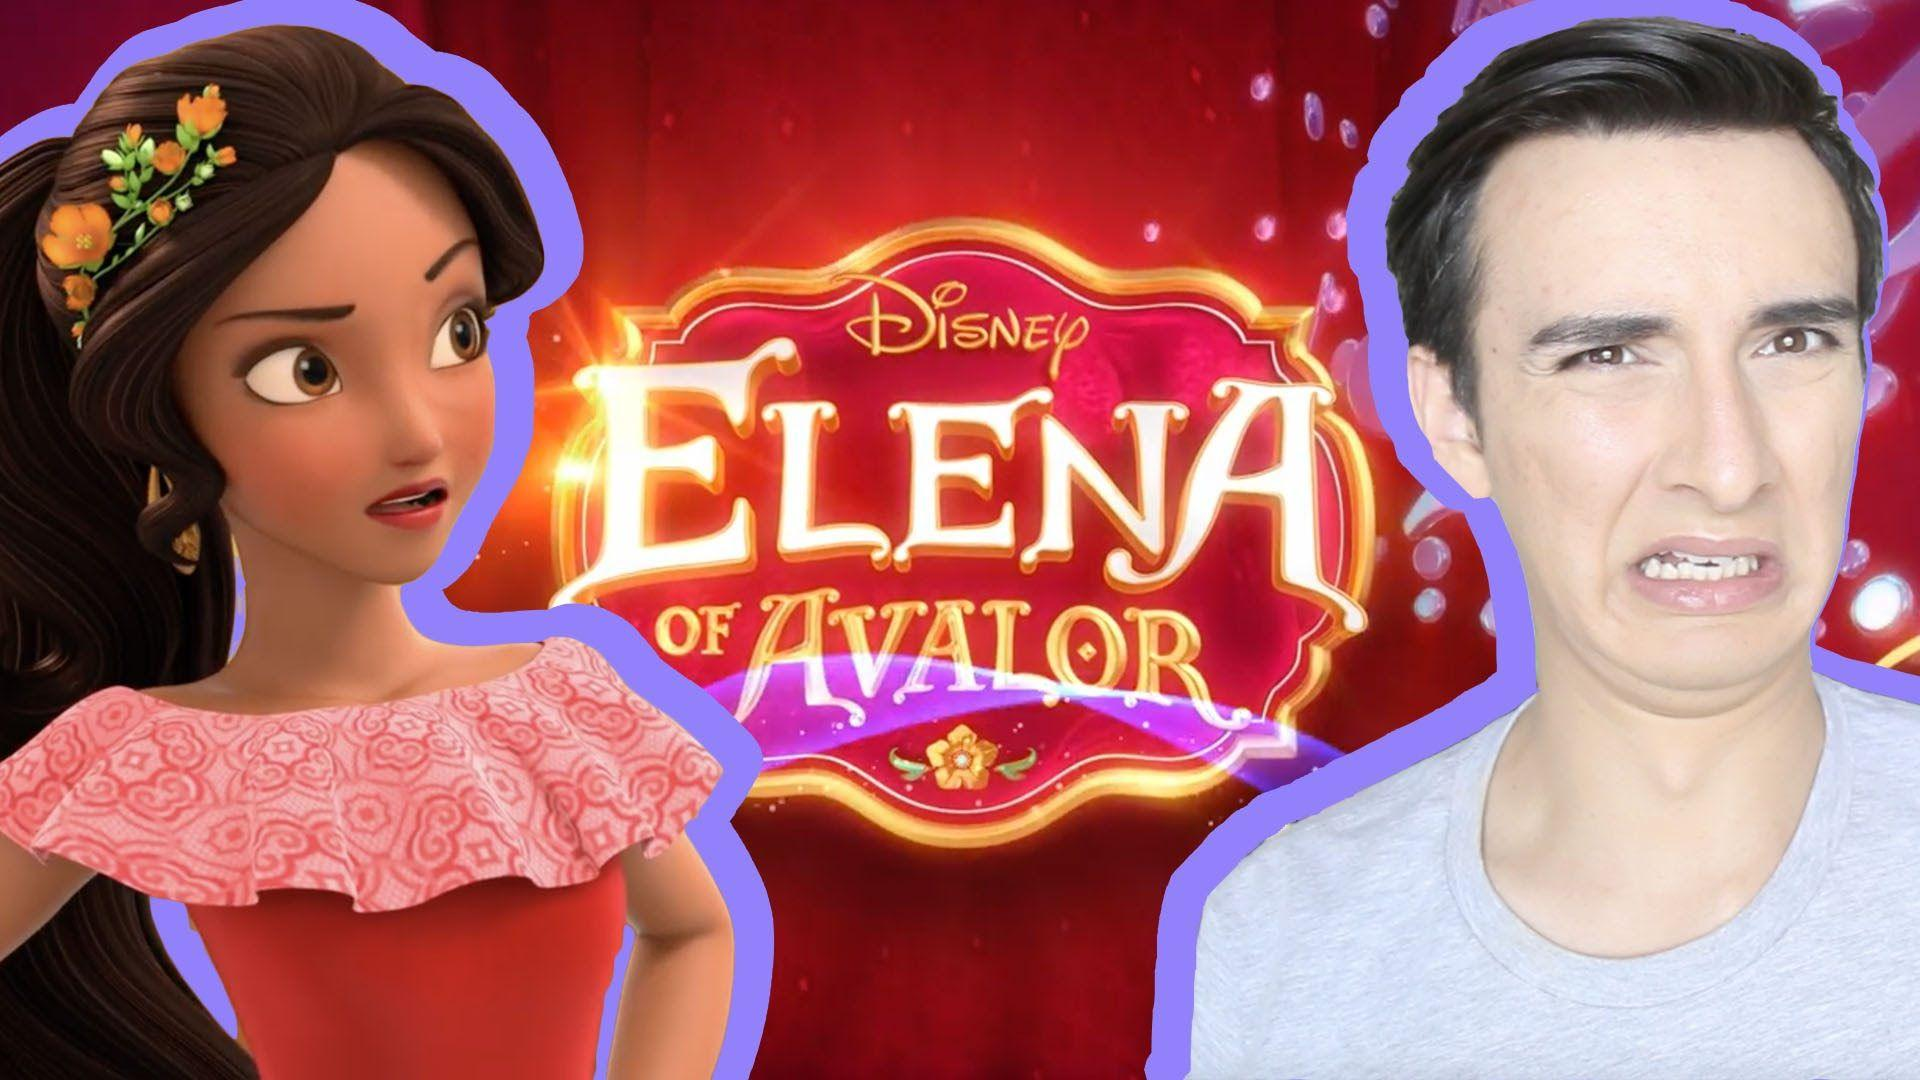 CUBANRANTS: ELENA OF AVALOR